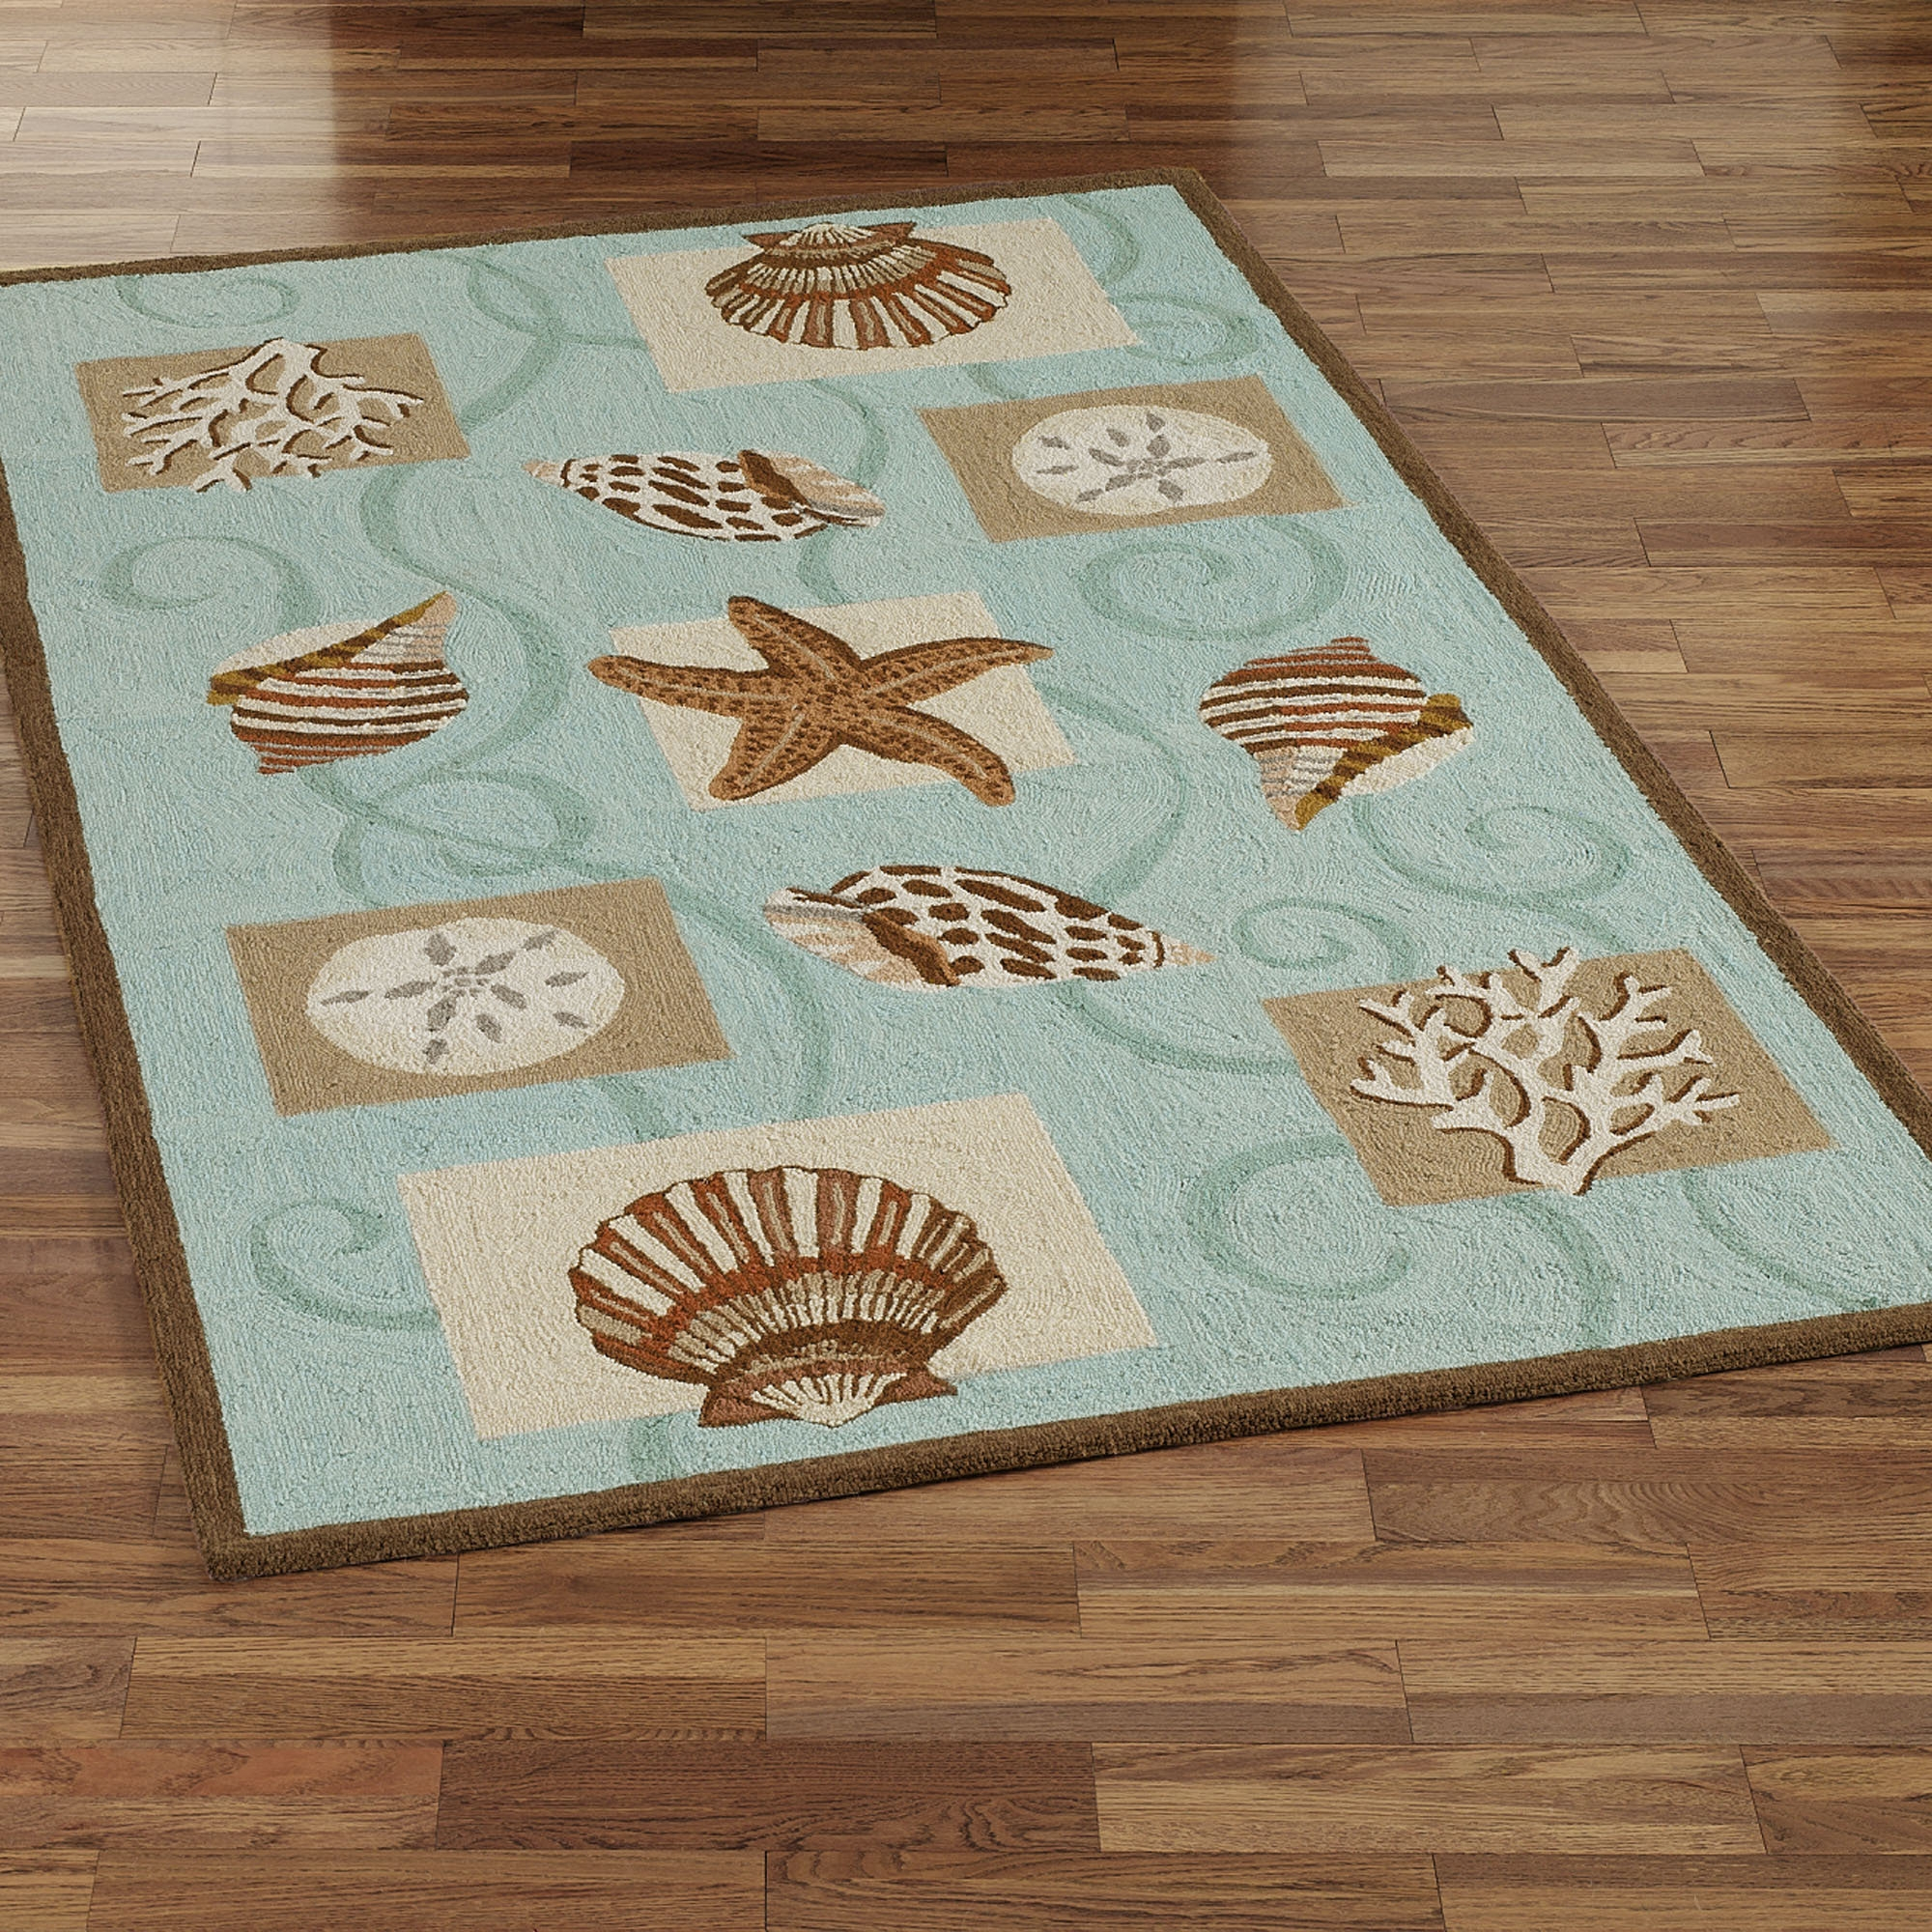 Collection Of Rug Runners For Bathroom - Turquoise and brown bathroom rugs for bathroom decorating ideas